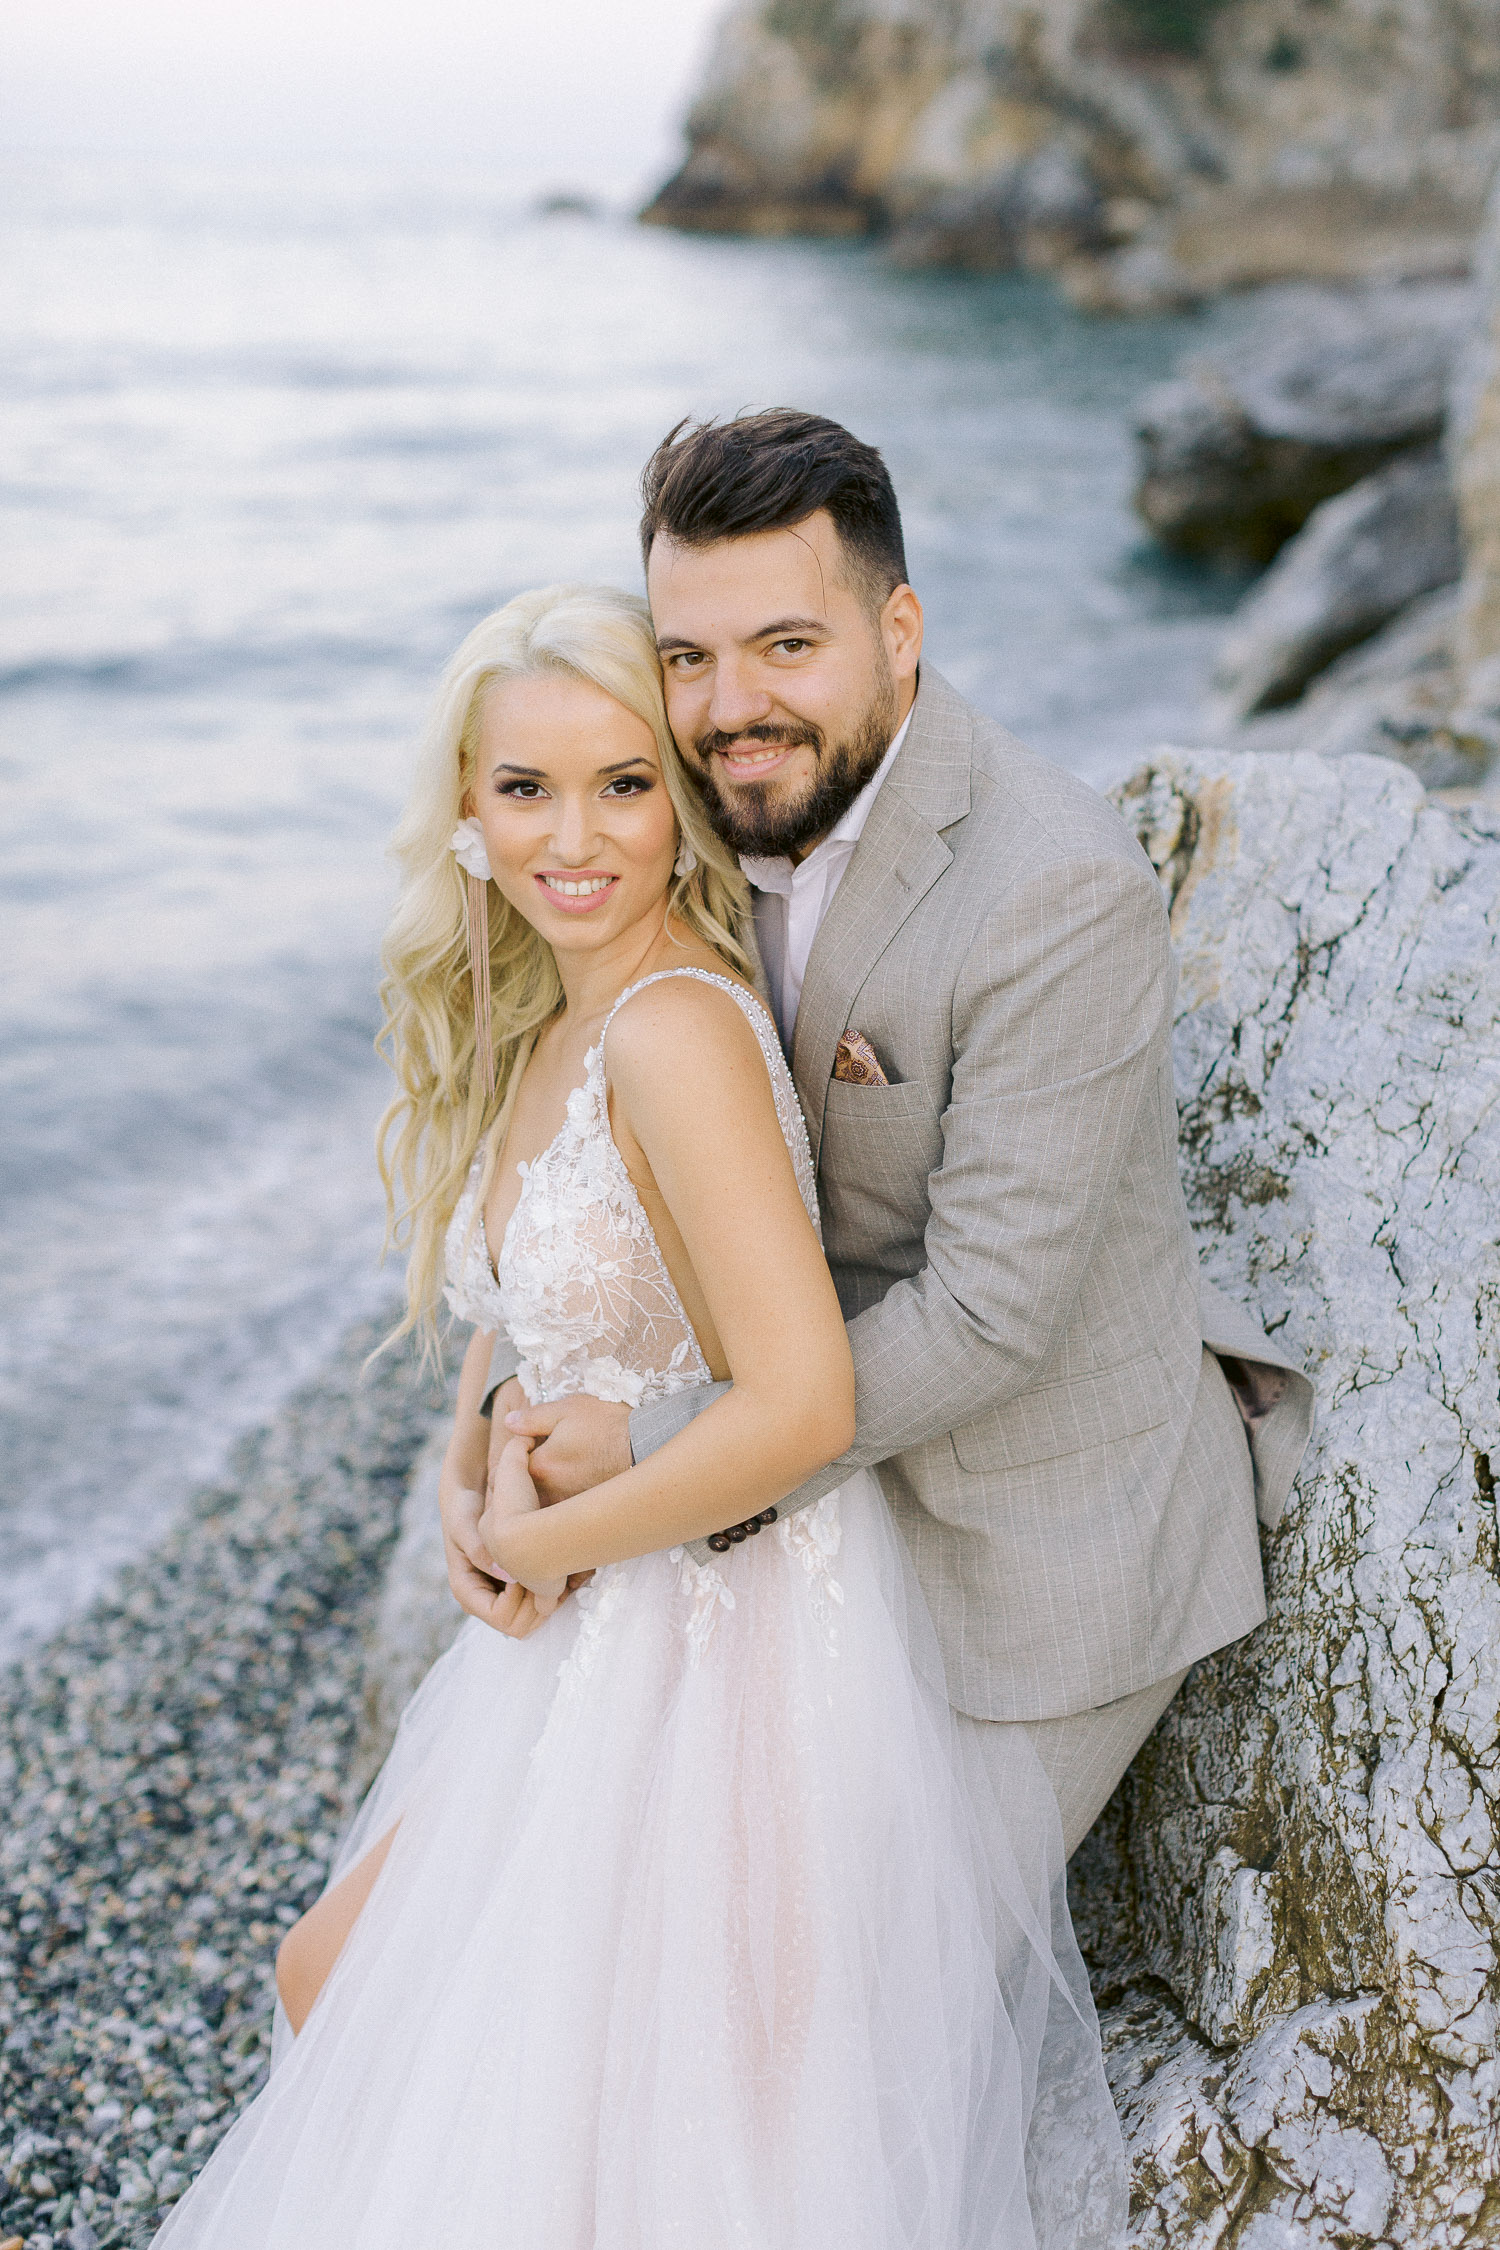 romantic coastal wedding in Greece bride and groom portrait on the beach